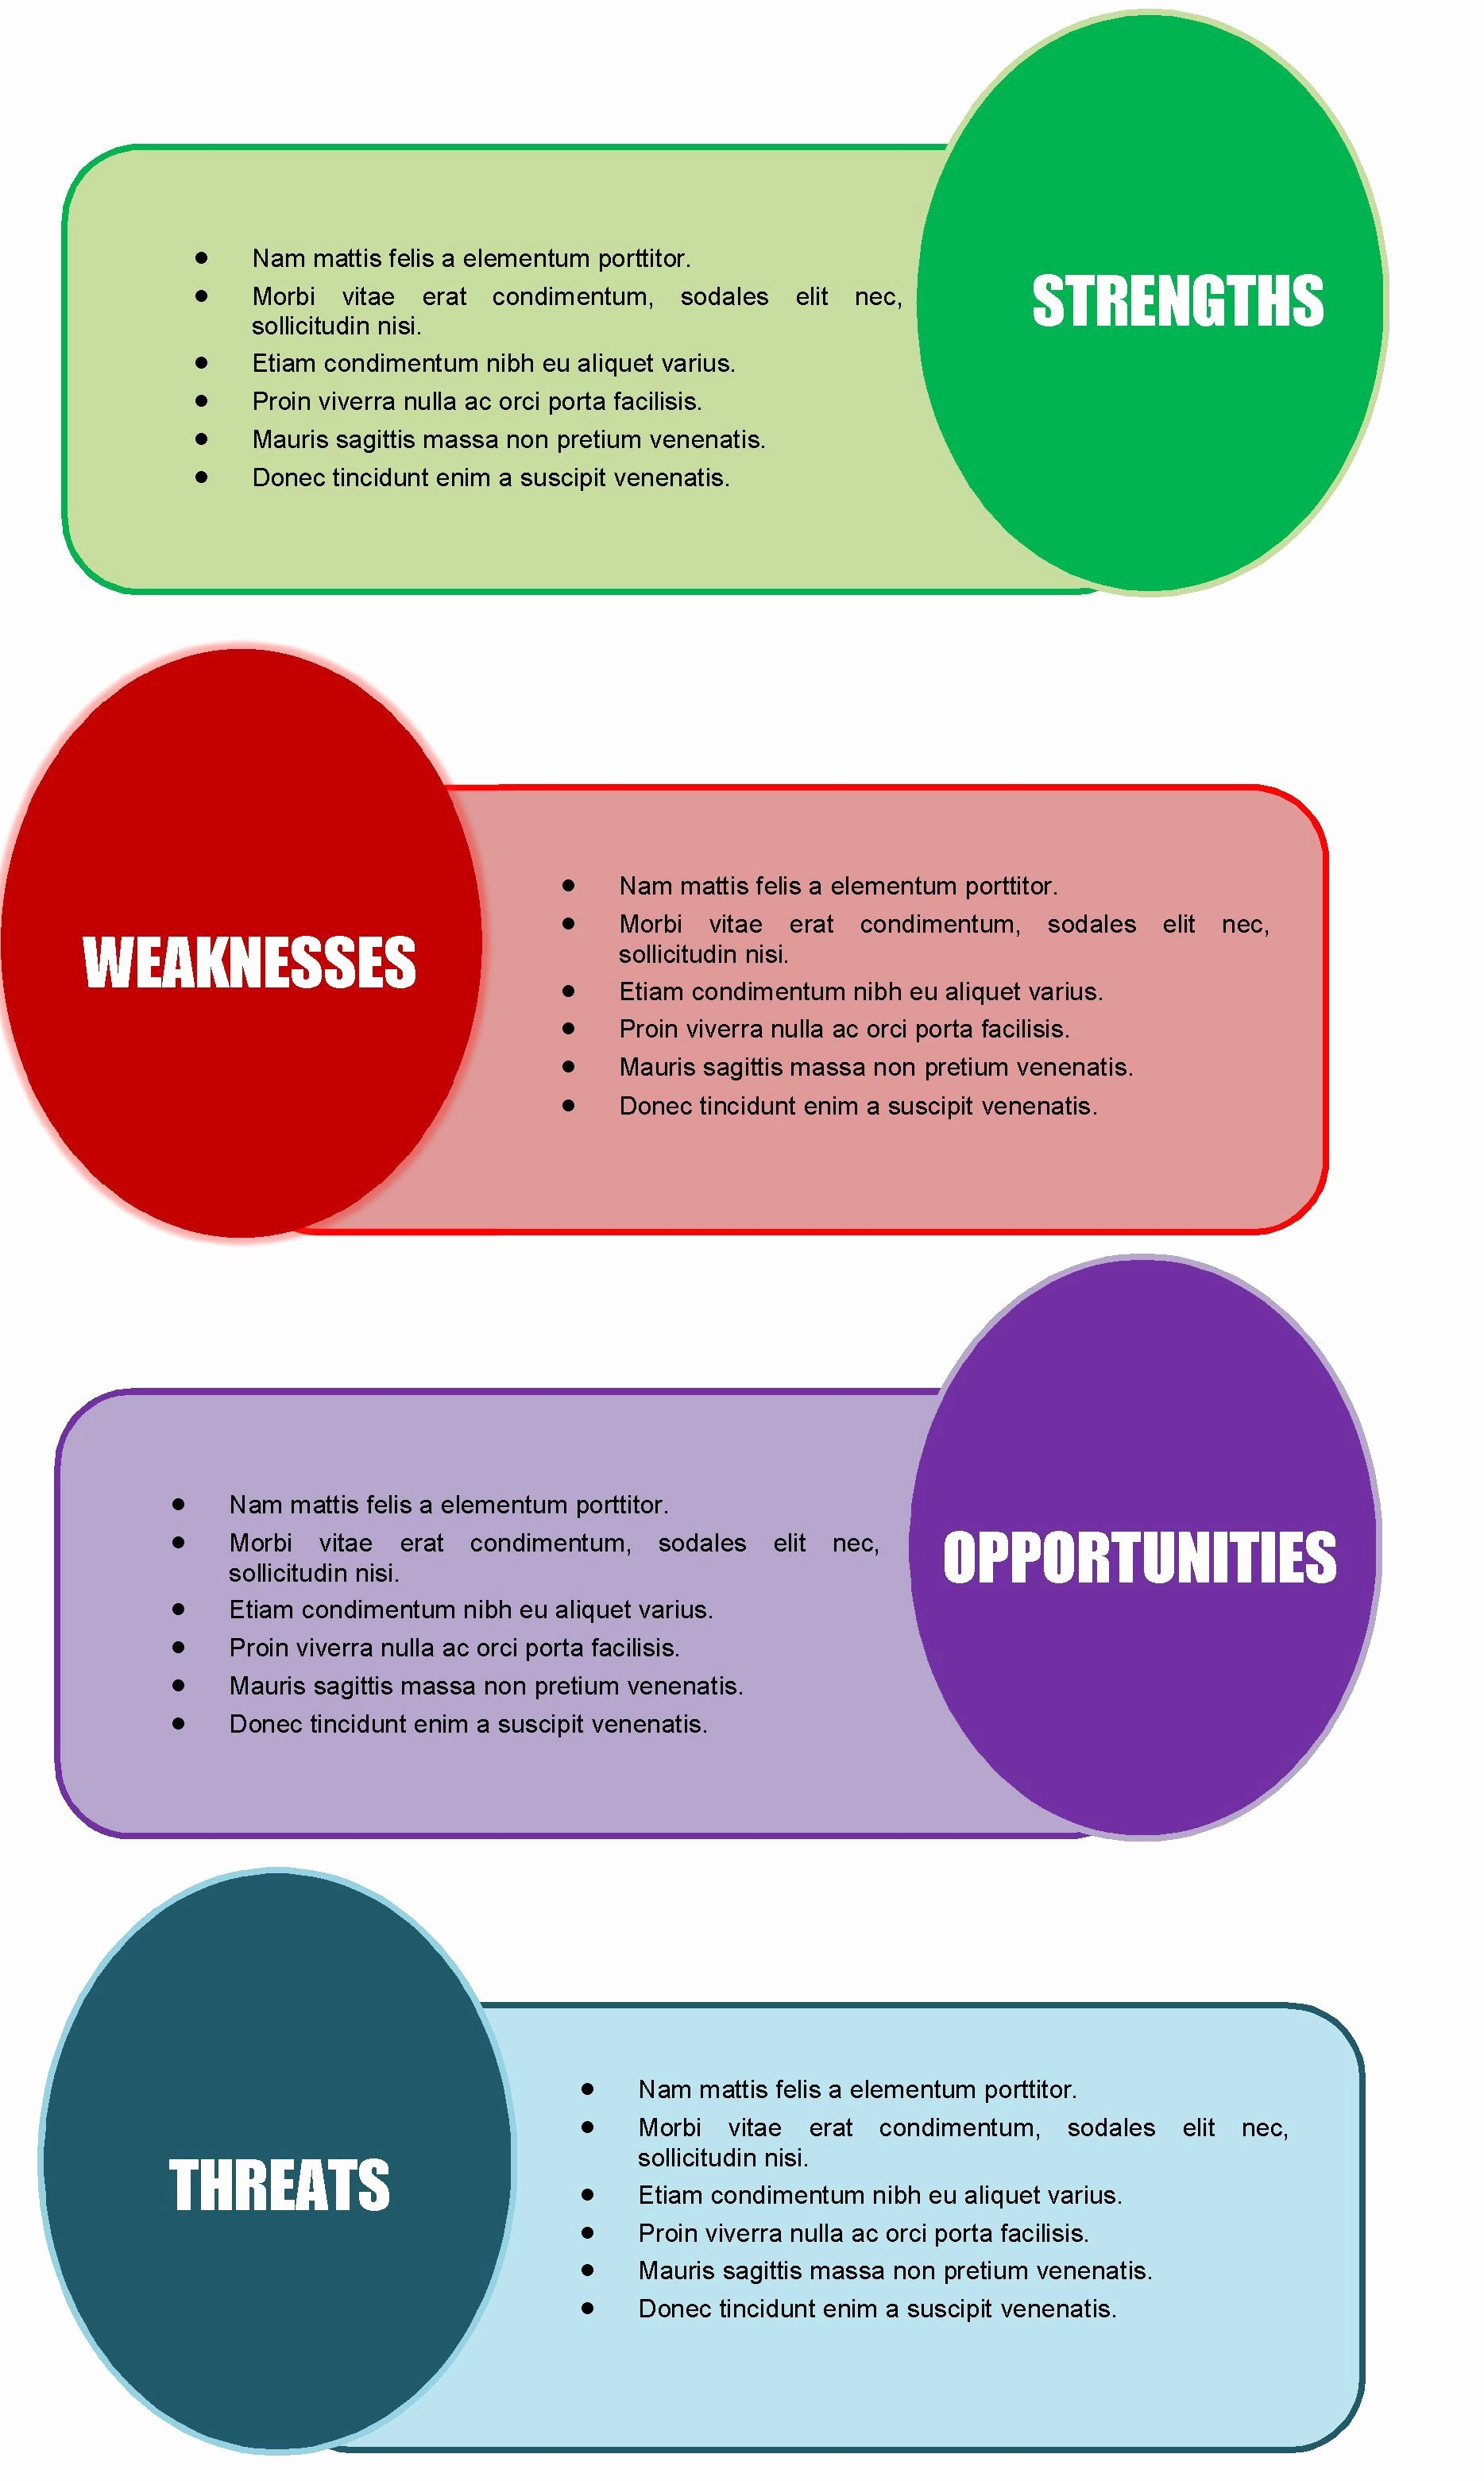 Swot Analysis Template Word Lovely 40 Free Swot Analysis Templates In Word Demplates